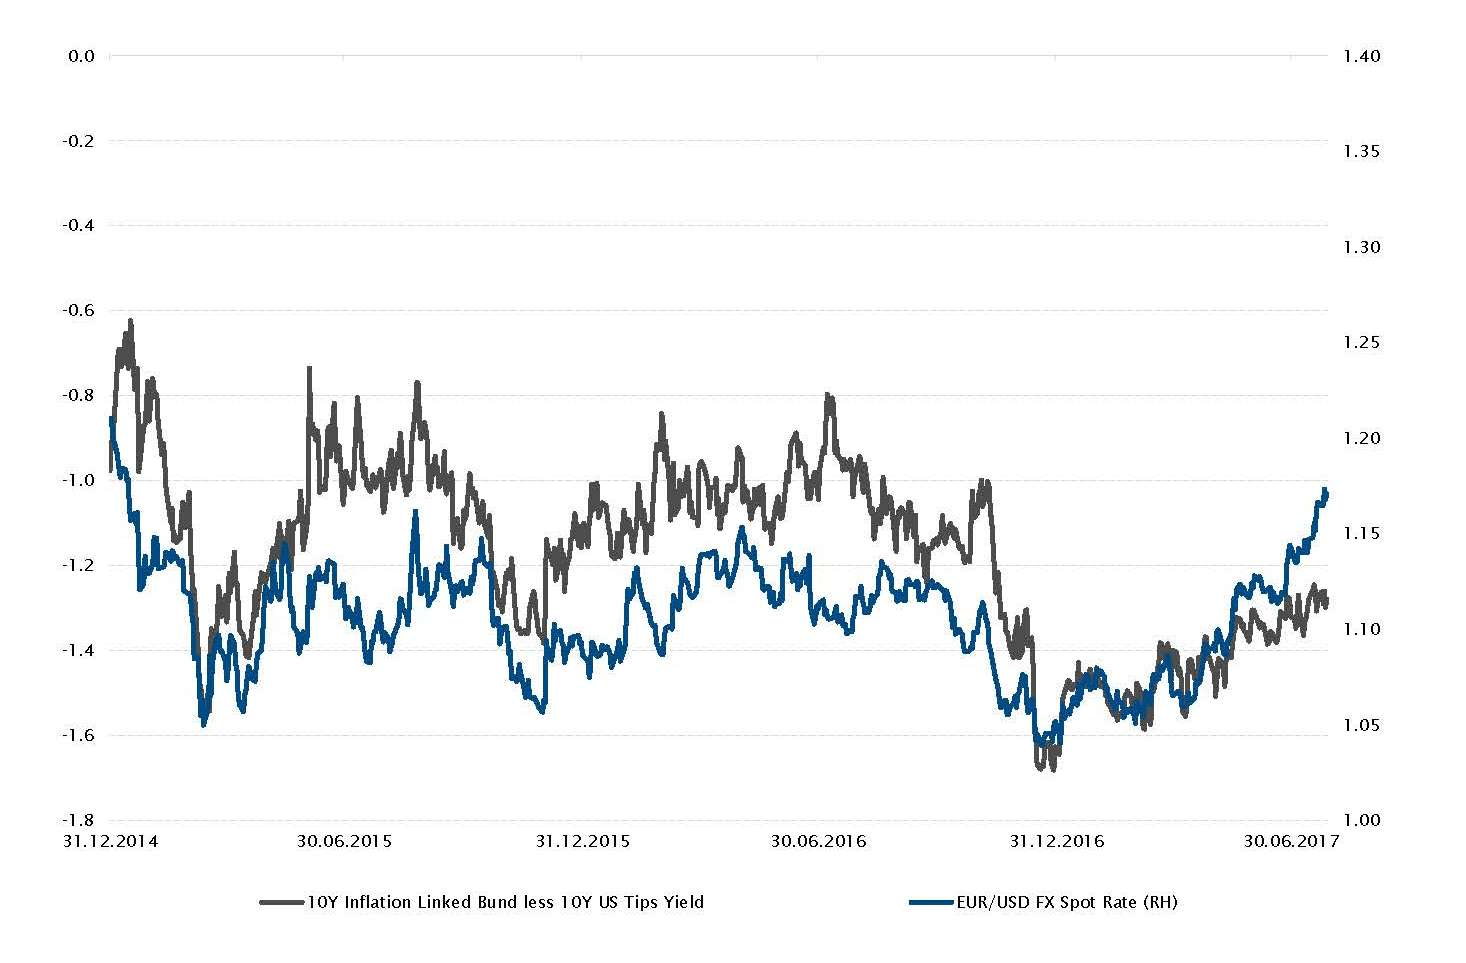 10Y Inflation Linked Bund less 10Y US Tips Yield and EUR/USD FX Spot rate evolution